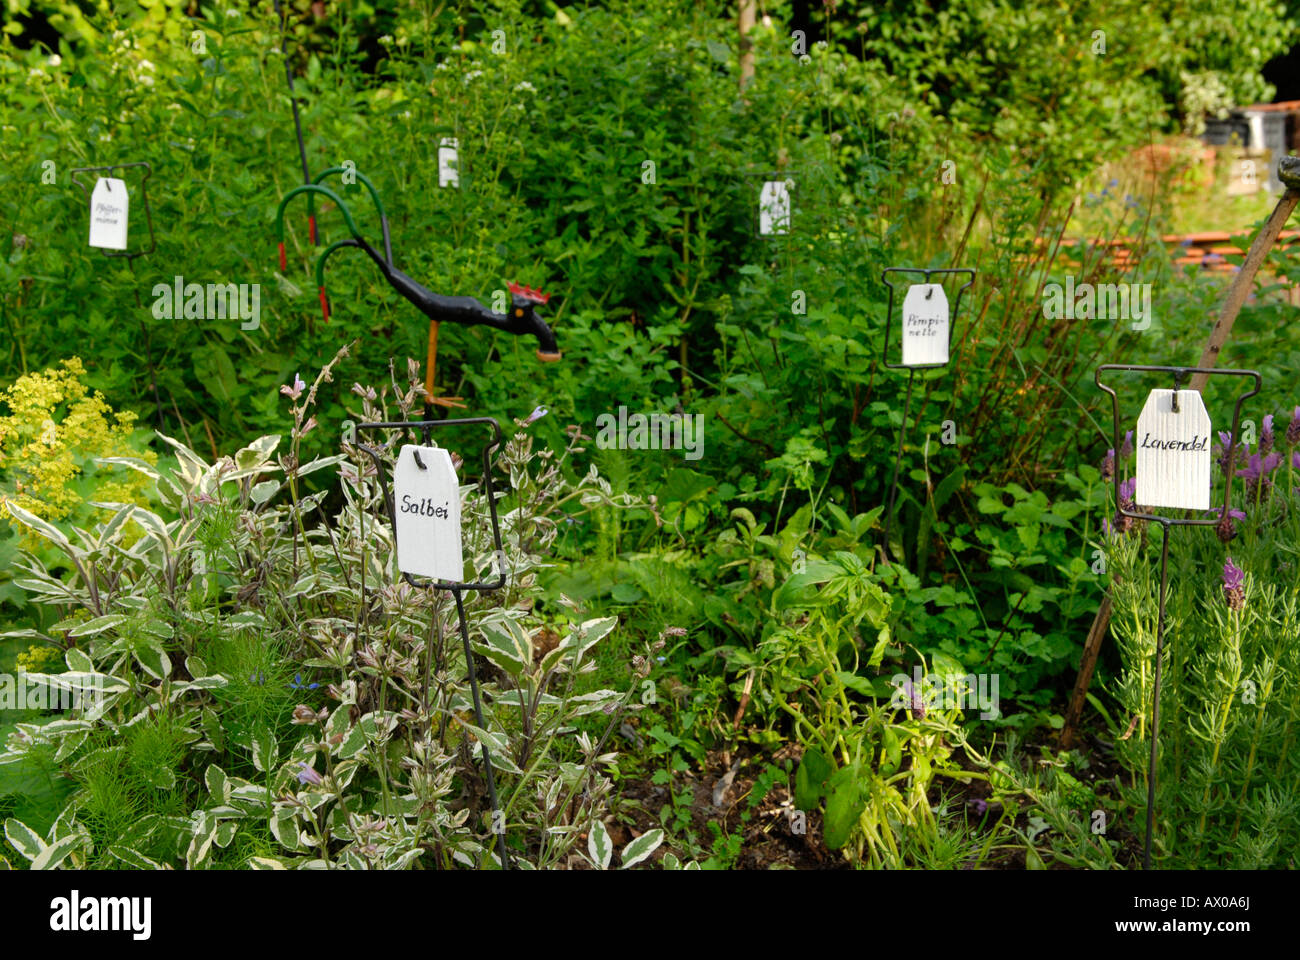 Charmant Different Kinds Of Herbs Marked By Signs In An Herb Garden   Stock Image